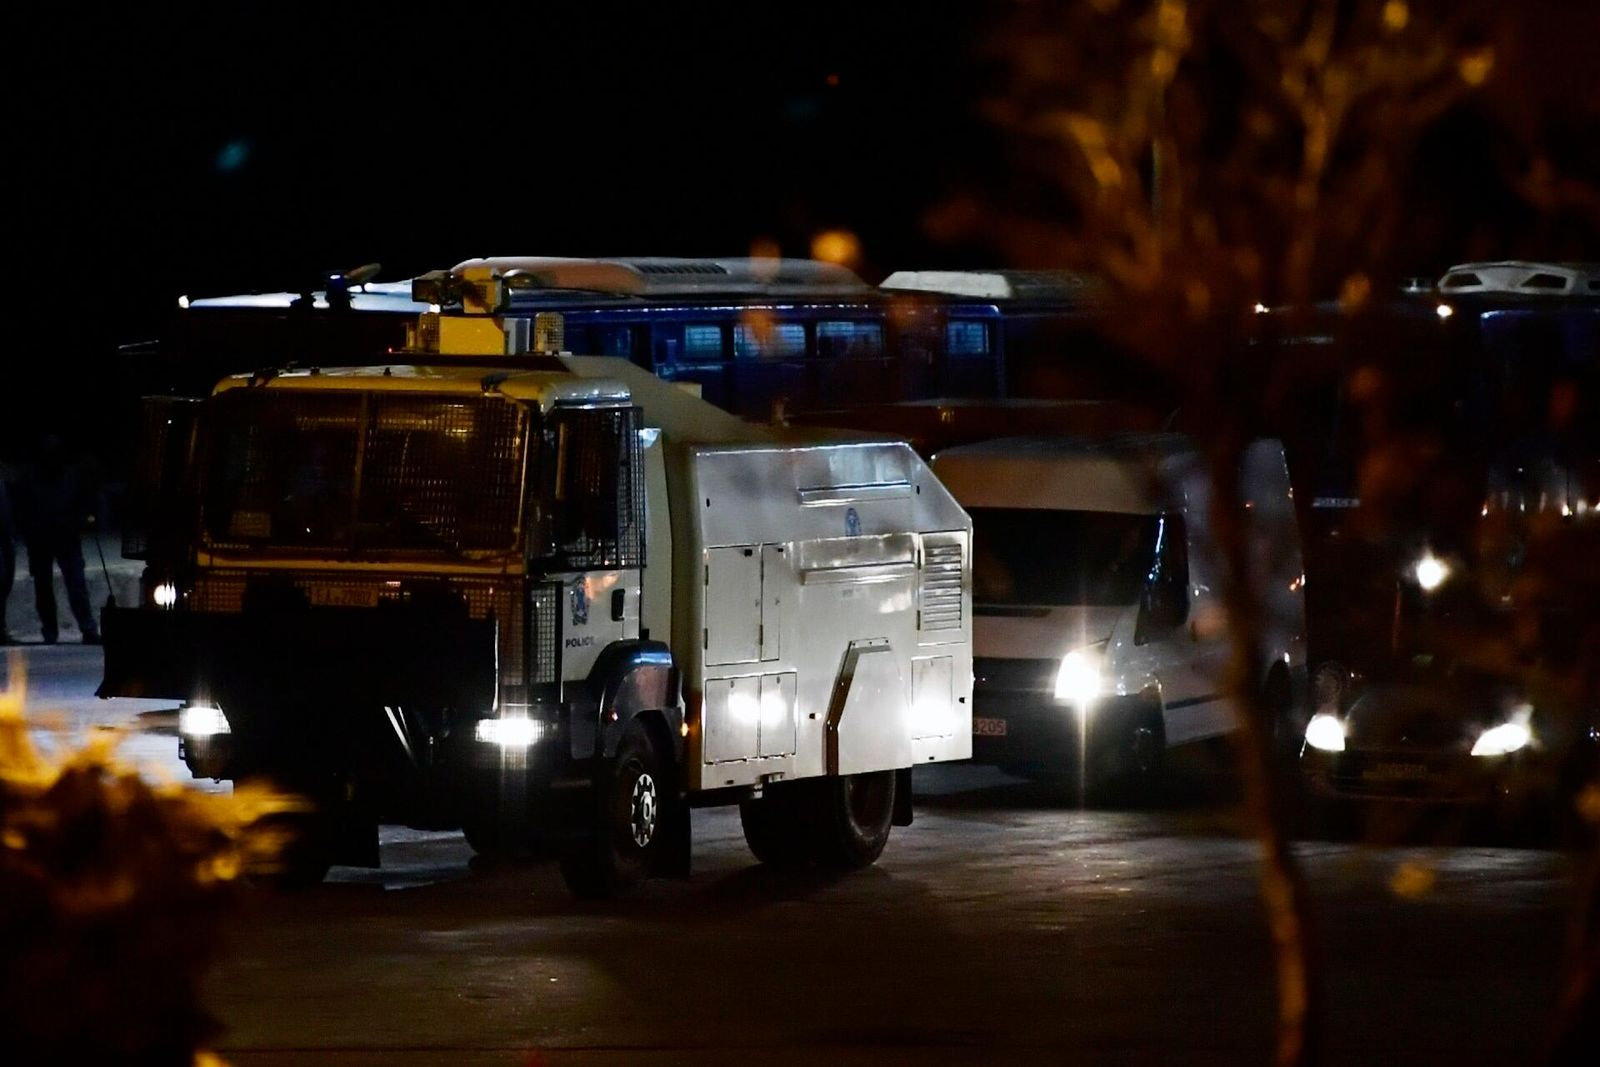 A police water cannon and other police vehicles arrive at the port of Mytilene on the northeastern Aegean island of Lesbos, Greece, early Tuesday, Feb. 25, 2020. (AP Photo/Michael Varaklas)